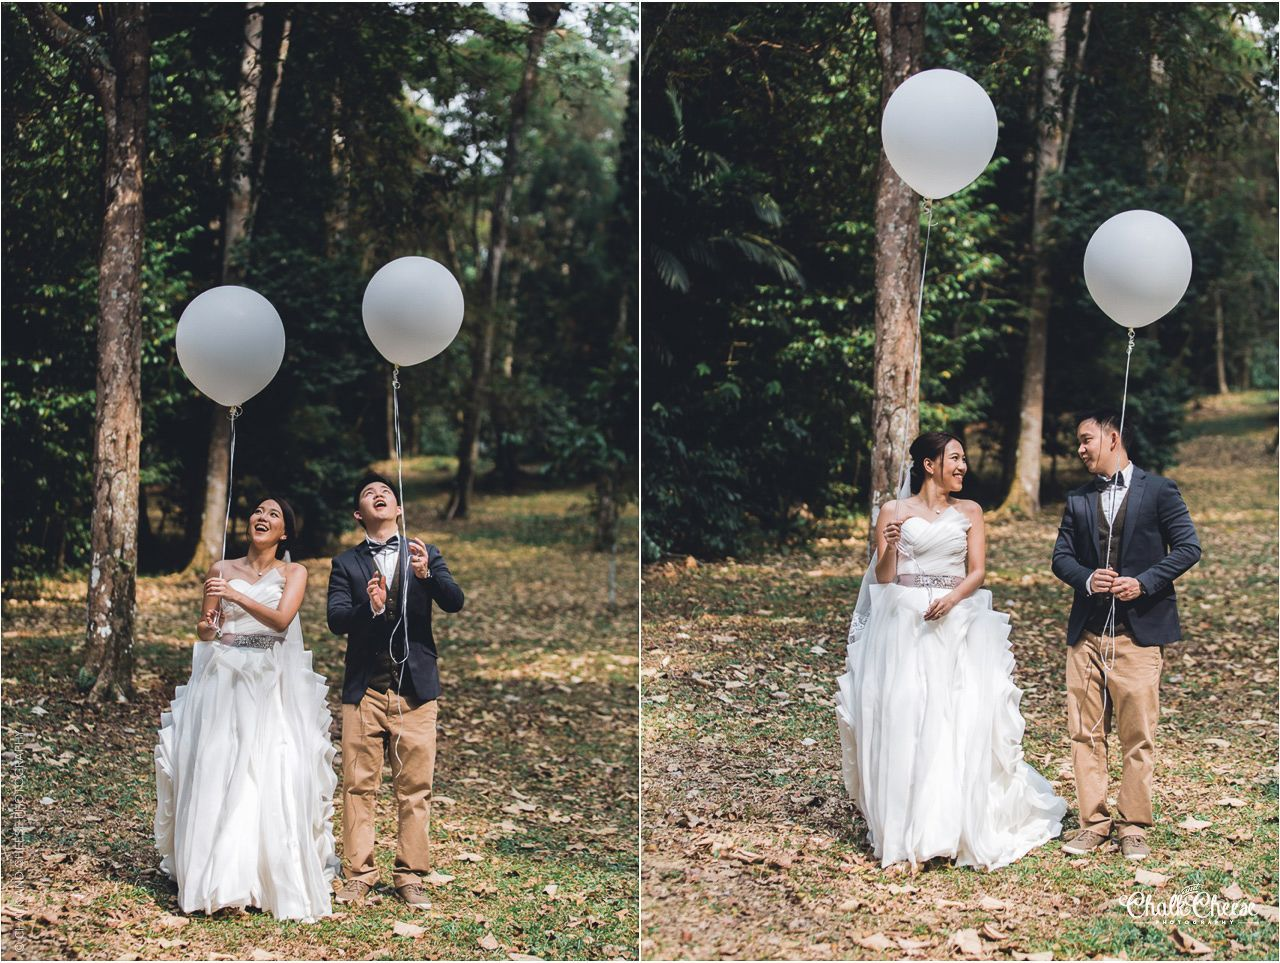 pre wedding photoshoot location malaysia%0A Balloons themed PreWedding Session at FRIM  Tropical Rainforest  Malaysia  by Chalk and